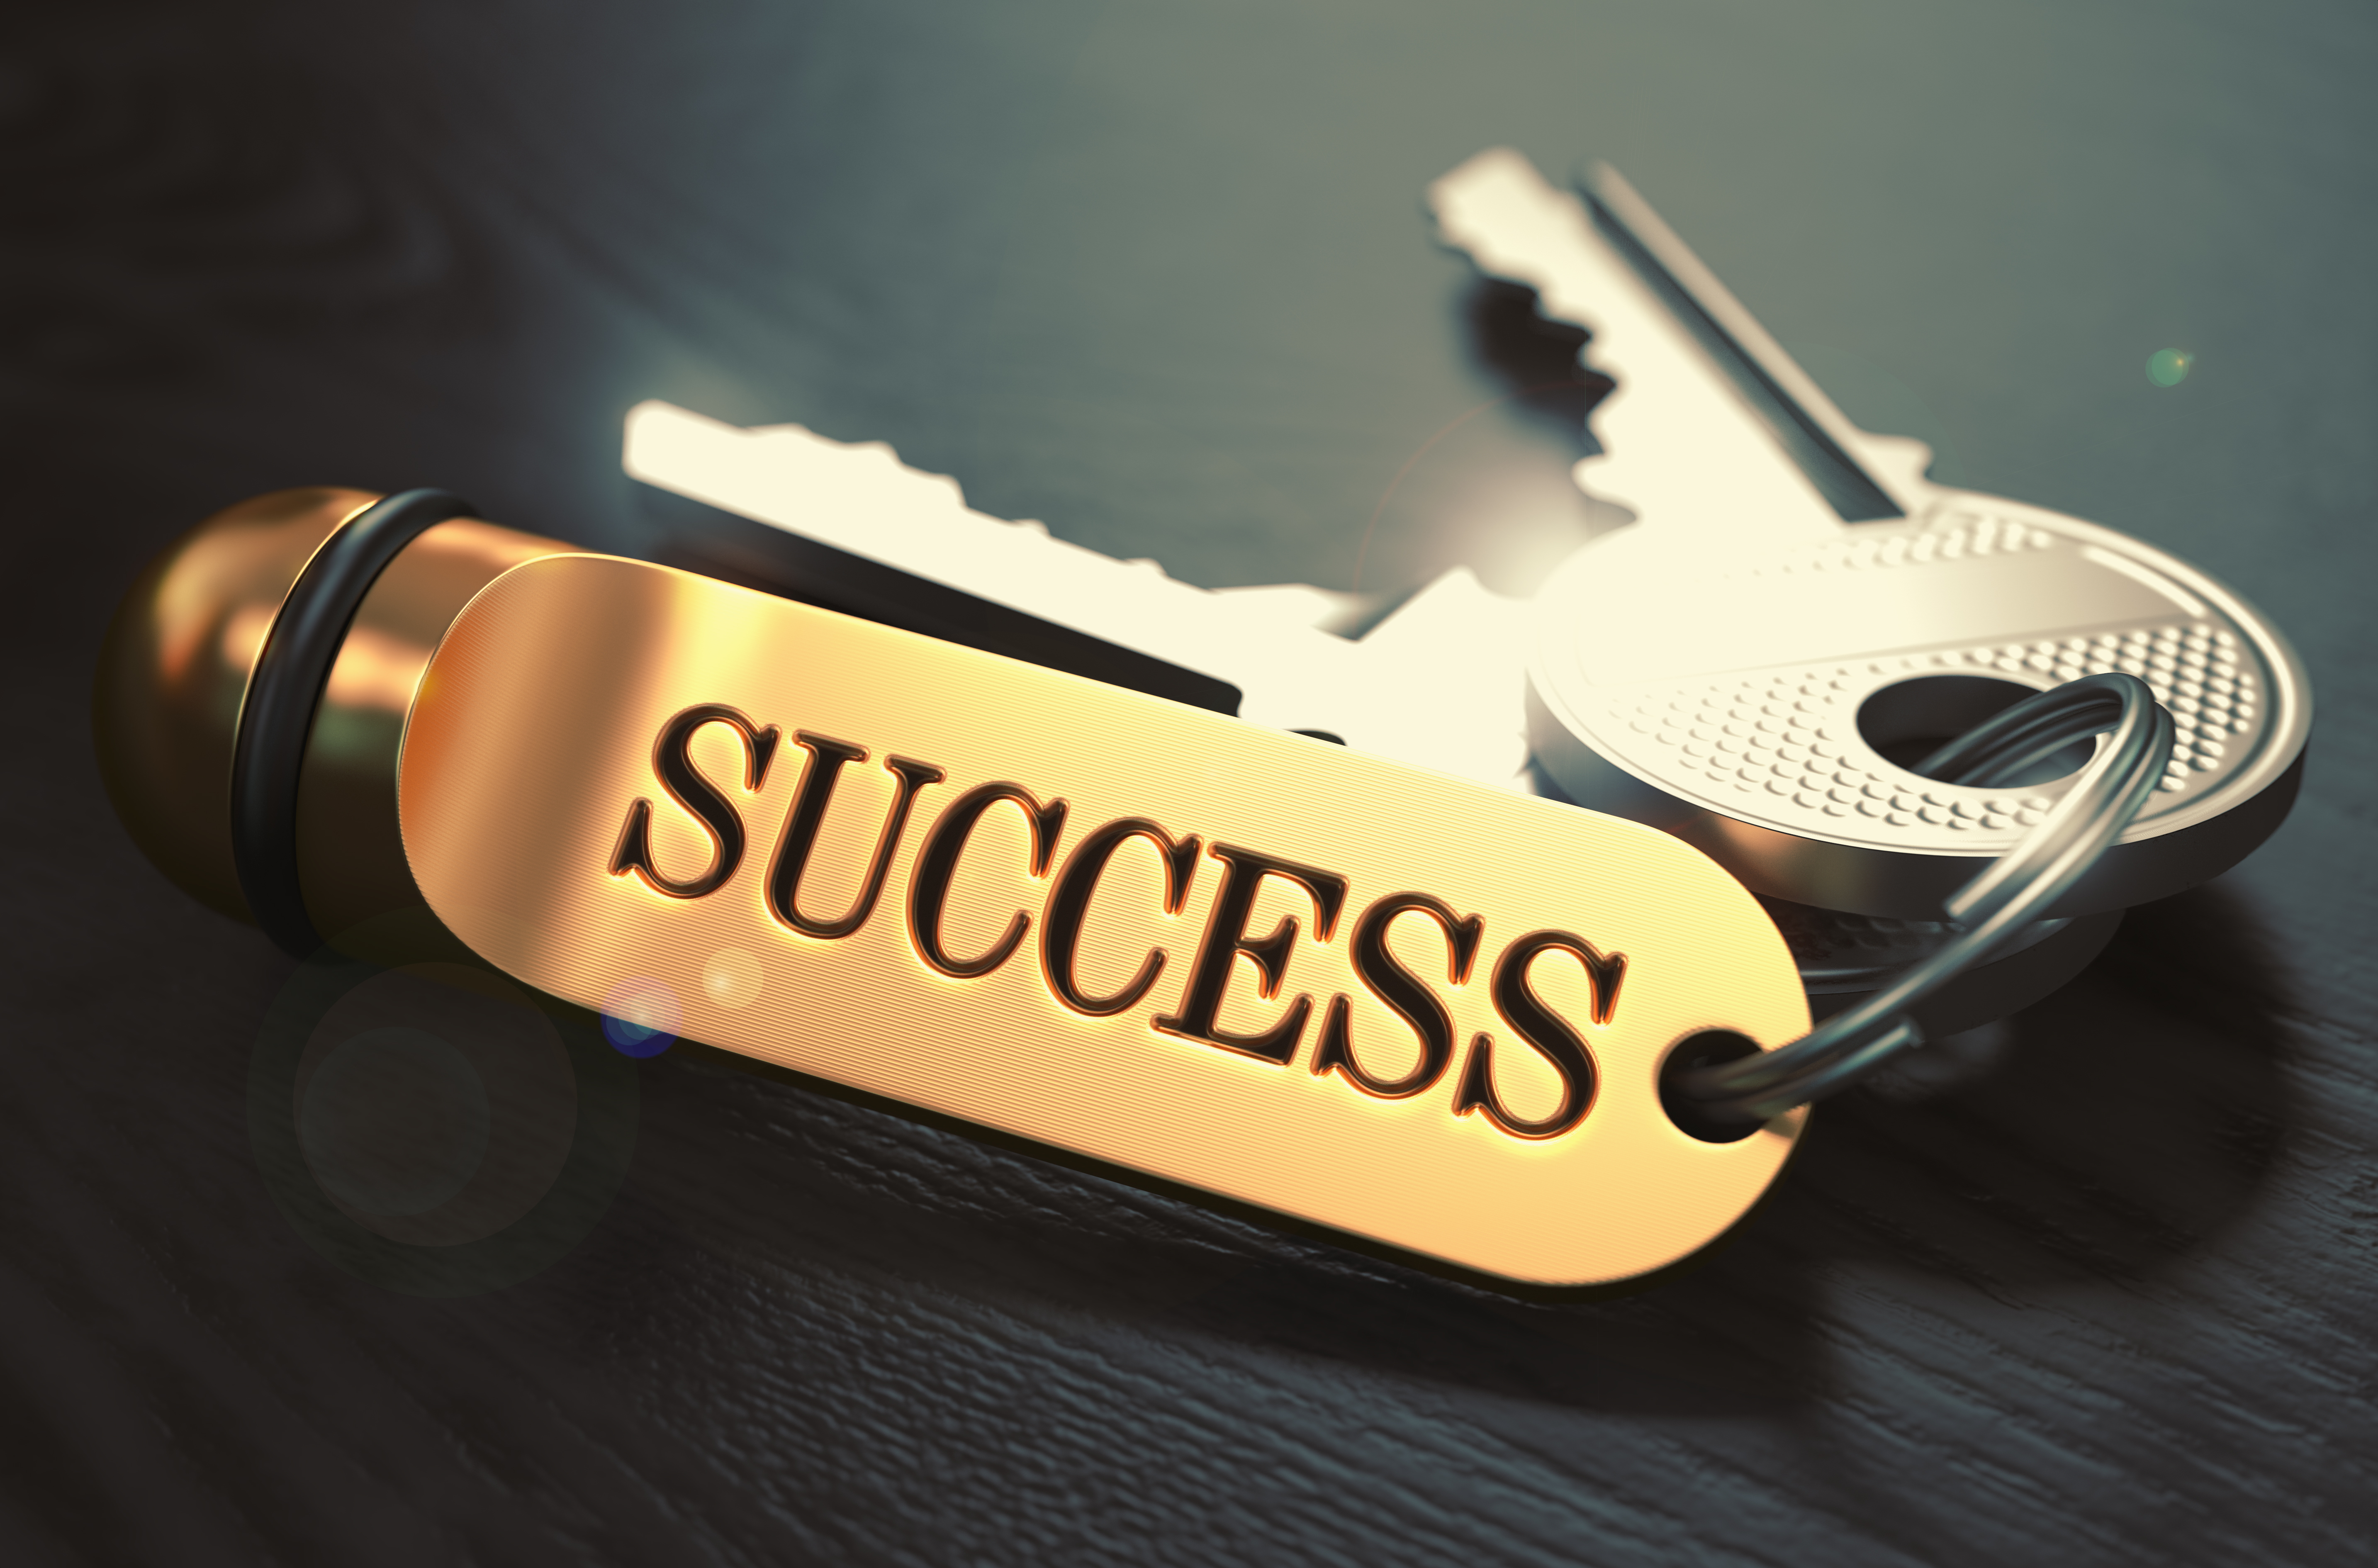 Keys to Success - Concept on Golden Keychain over Black Wooden Backgro